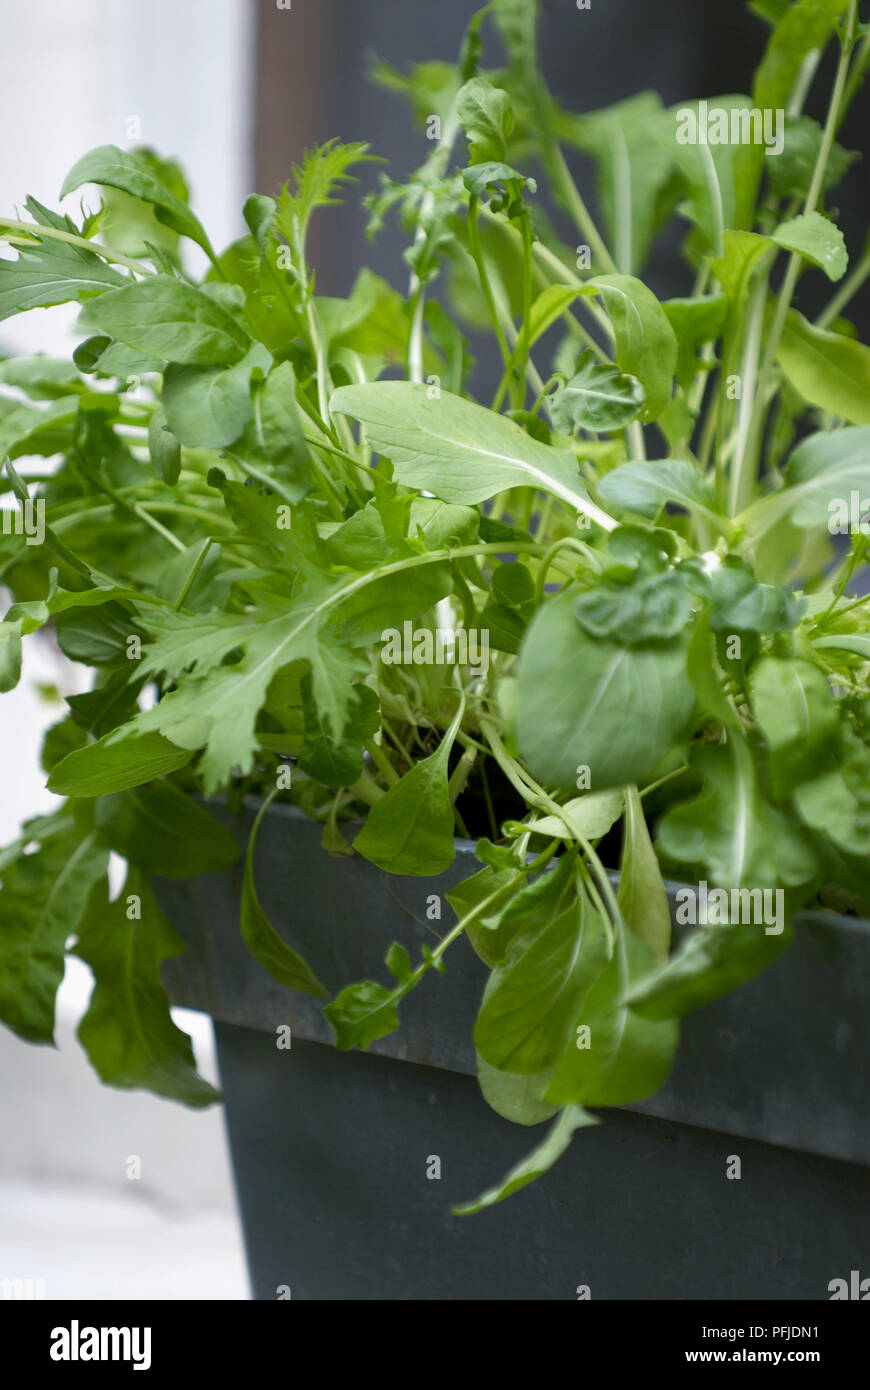 Salad grown in window box, close-up - Stock Image